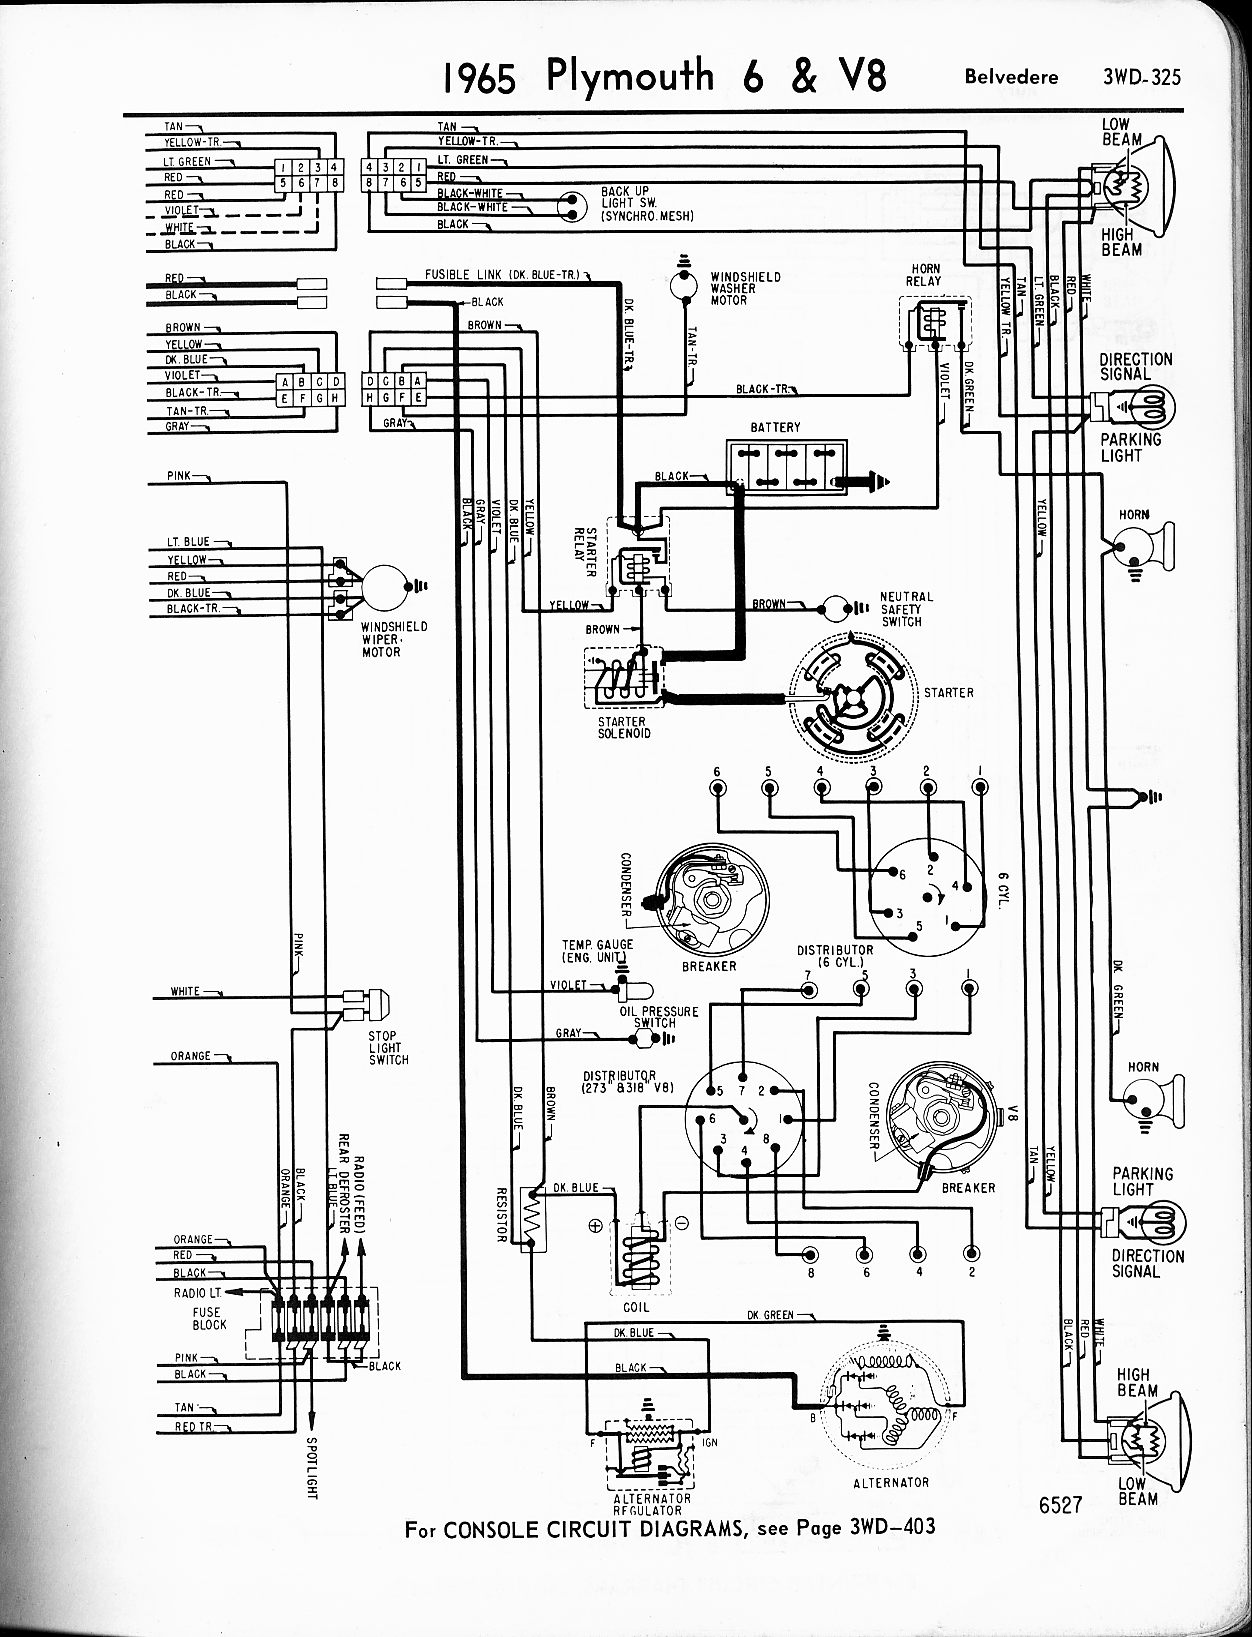 1956 1965 Plymouth Wiring The Old Car Manual Project Dodge Truck Diagram 6 V8 Belvedere Right Page